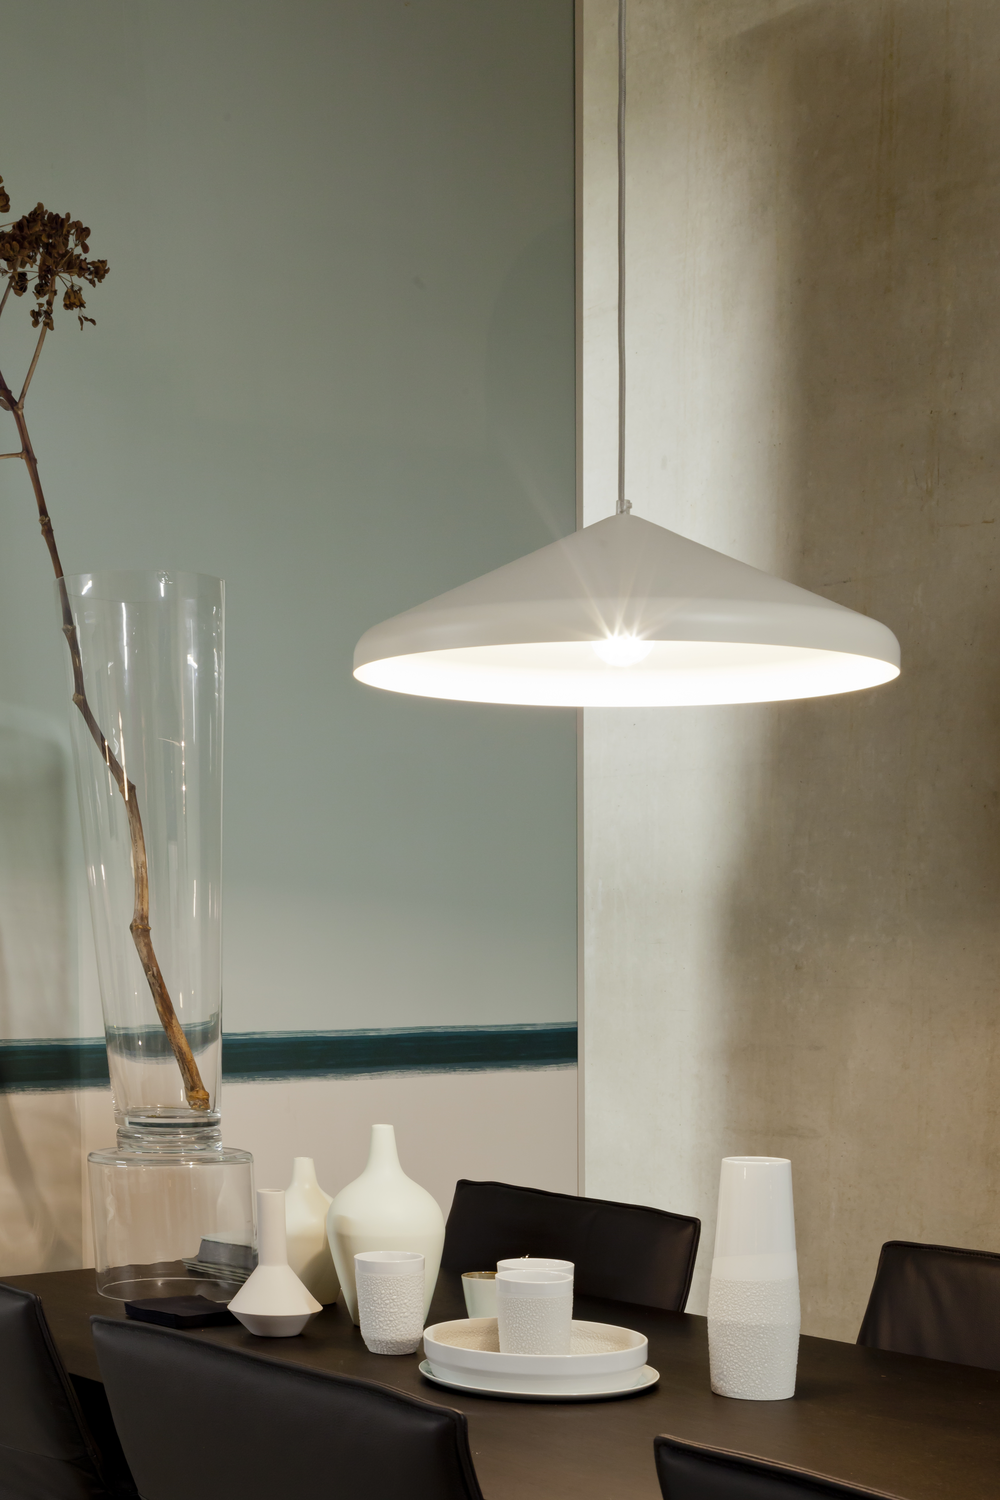 Lloop XL Lamp White Hanglamp Groot Wit Styling By Bregje Nix En Marjolein Vonk Image By Vij5 20